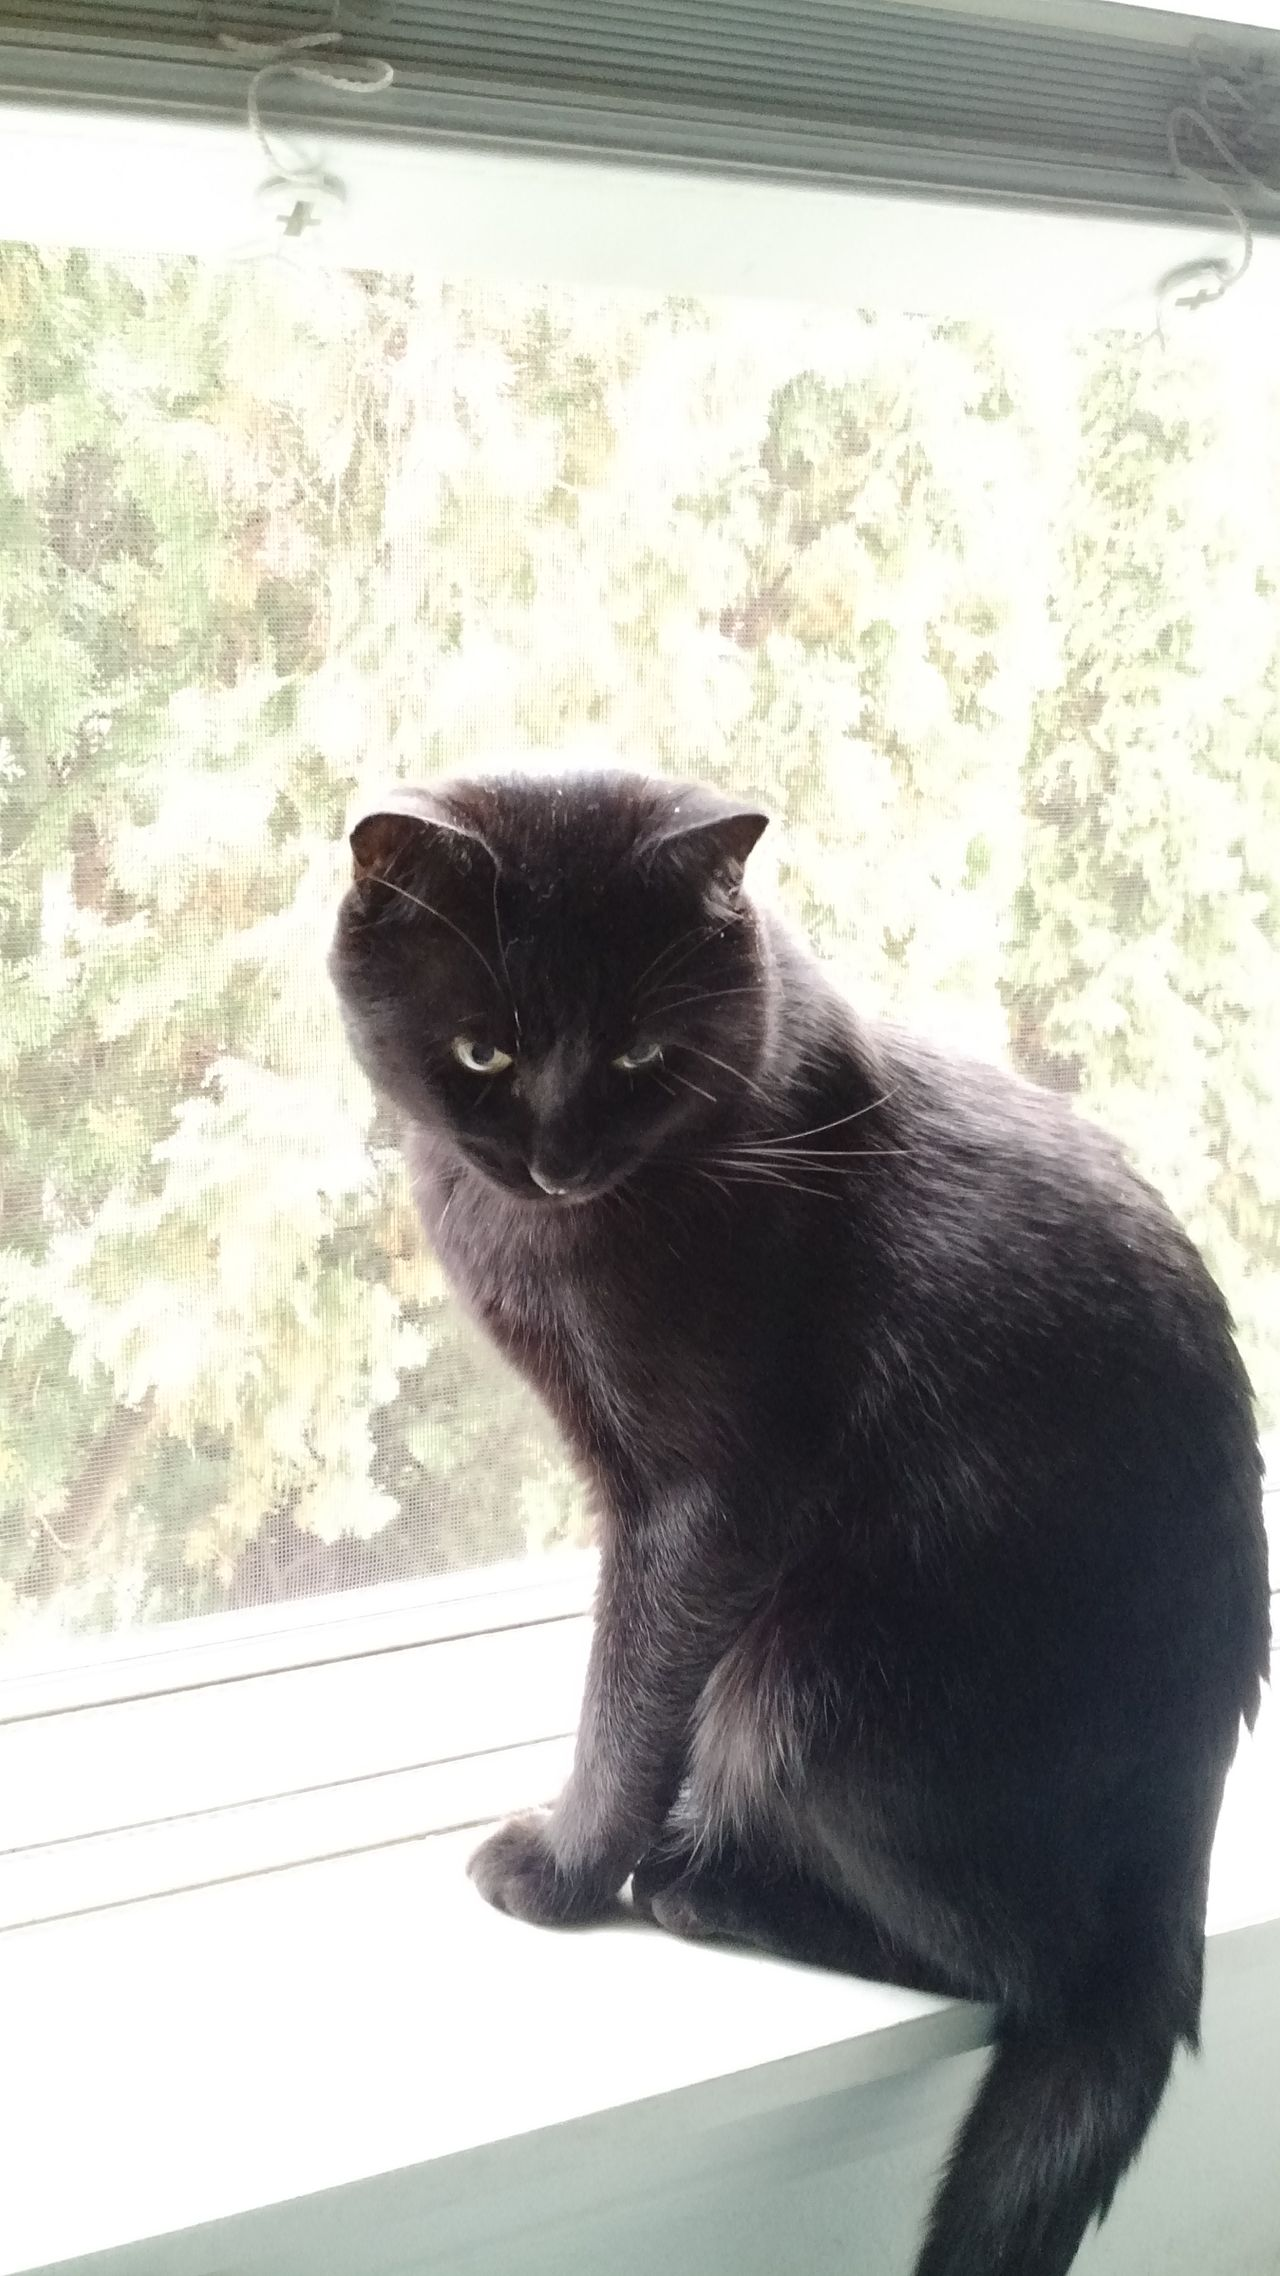 One Animal Animal Themes Mammal Domestic Cat No People Pets Domestic Animals Feline Close-up Day Outdoors Black Cats Are Beautiful